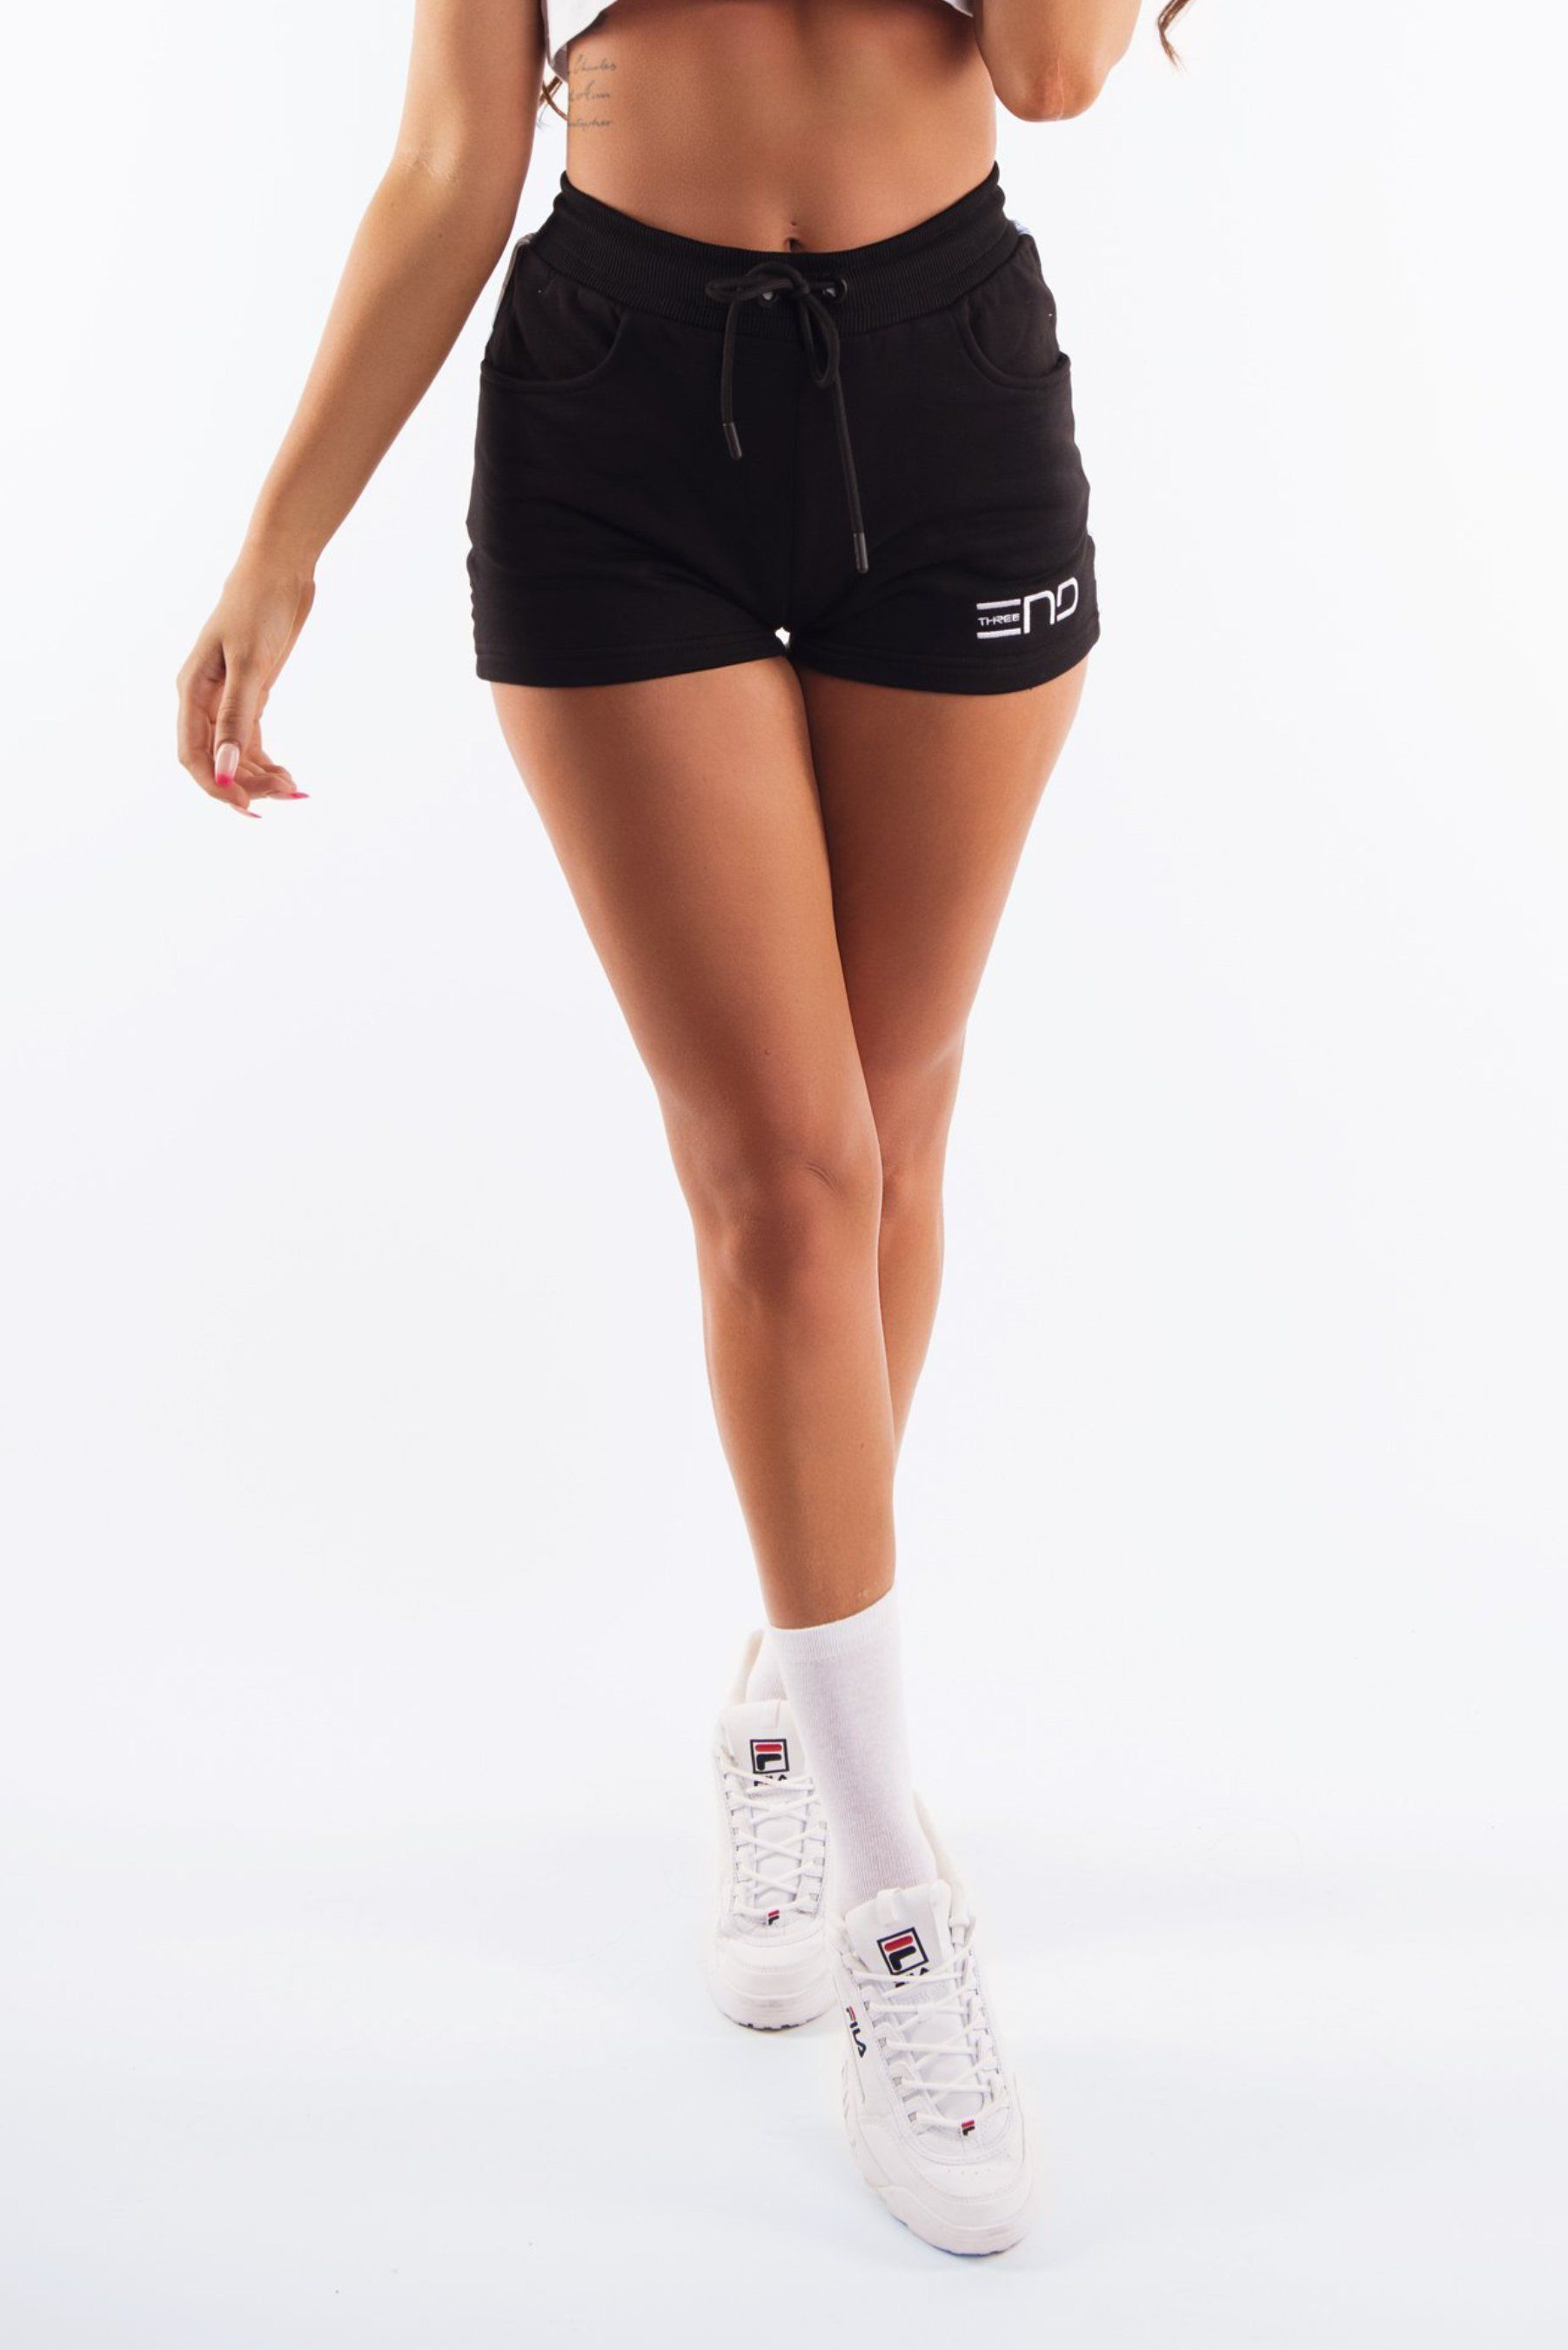 Three End Womens Urban Tape Shorts - Black